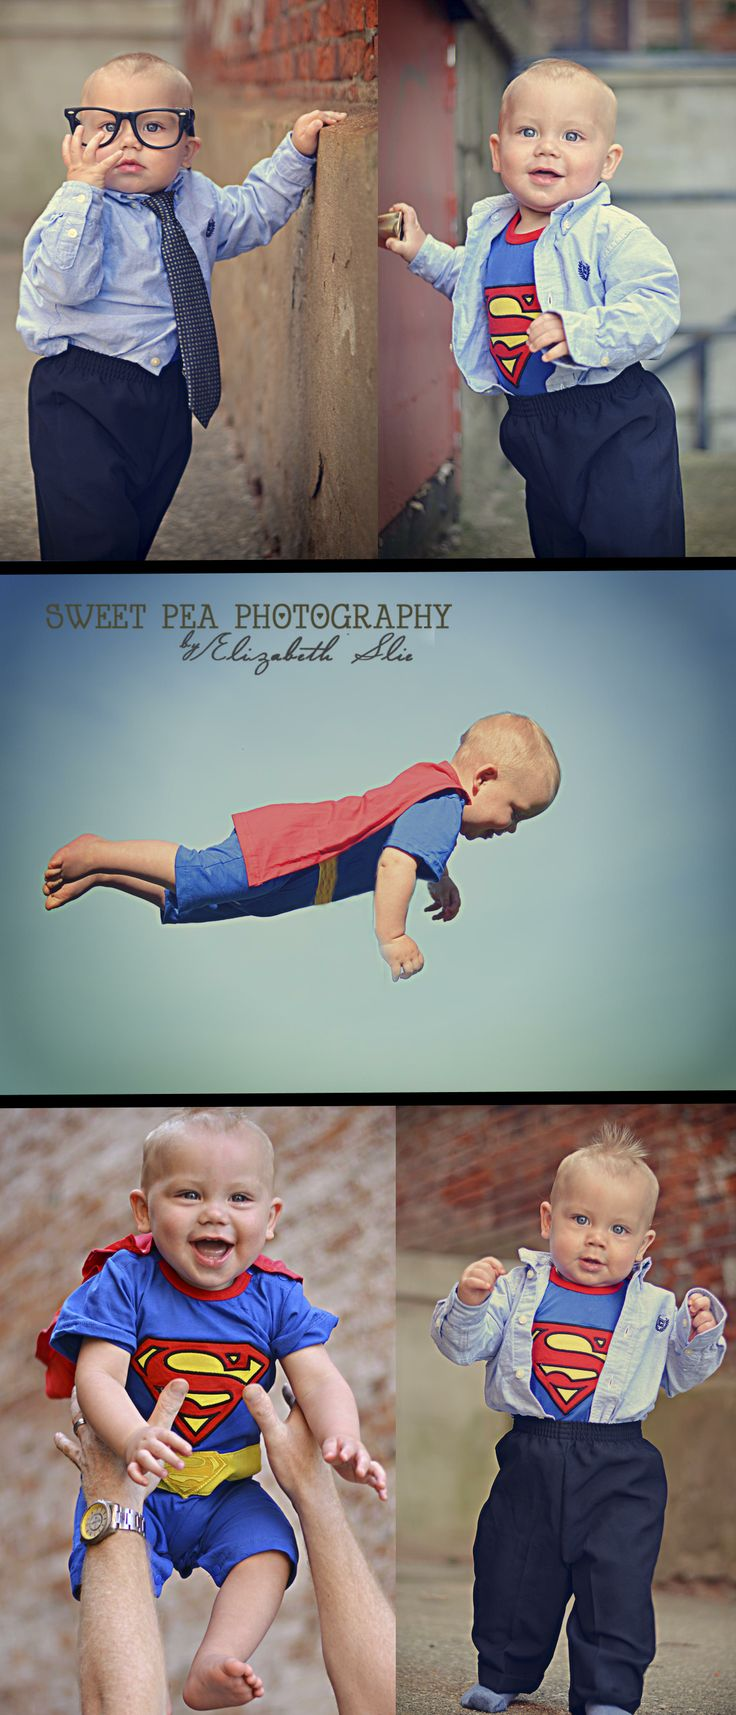 One Year Old Boy Birthday Photo Shoot Ideas. Super Hero Superman Photo Shoot. Sweet Pea Photography, Norwalk, OH